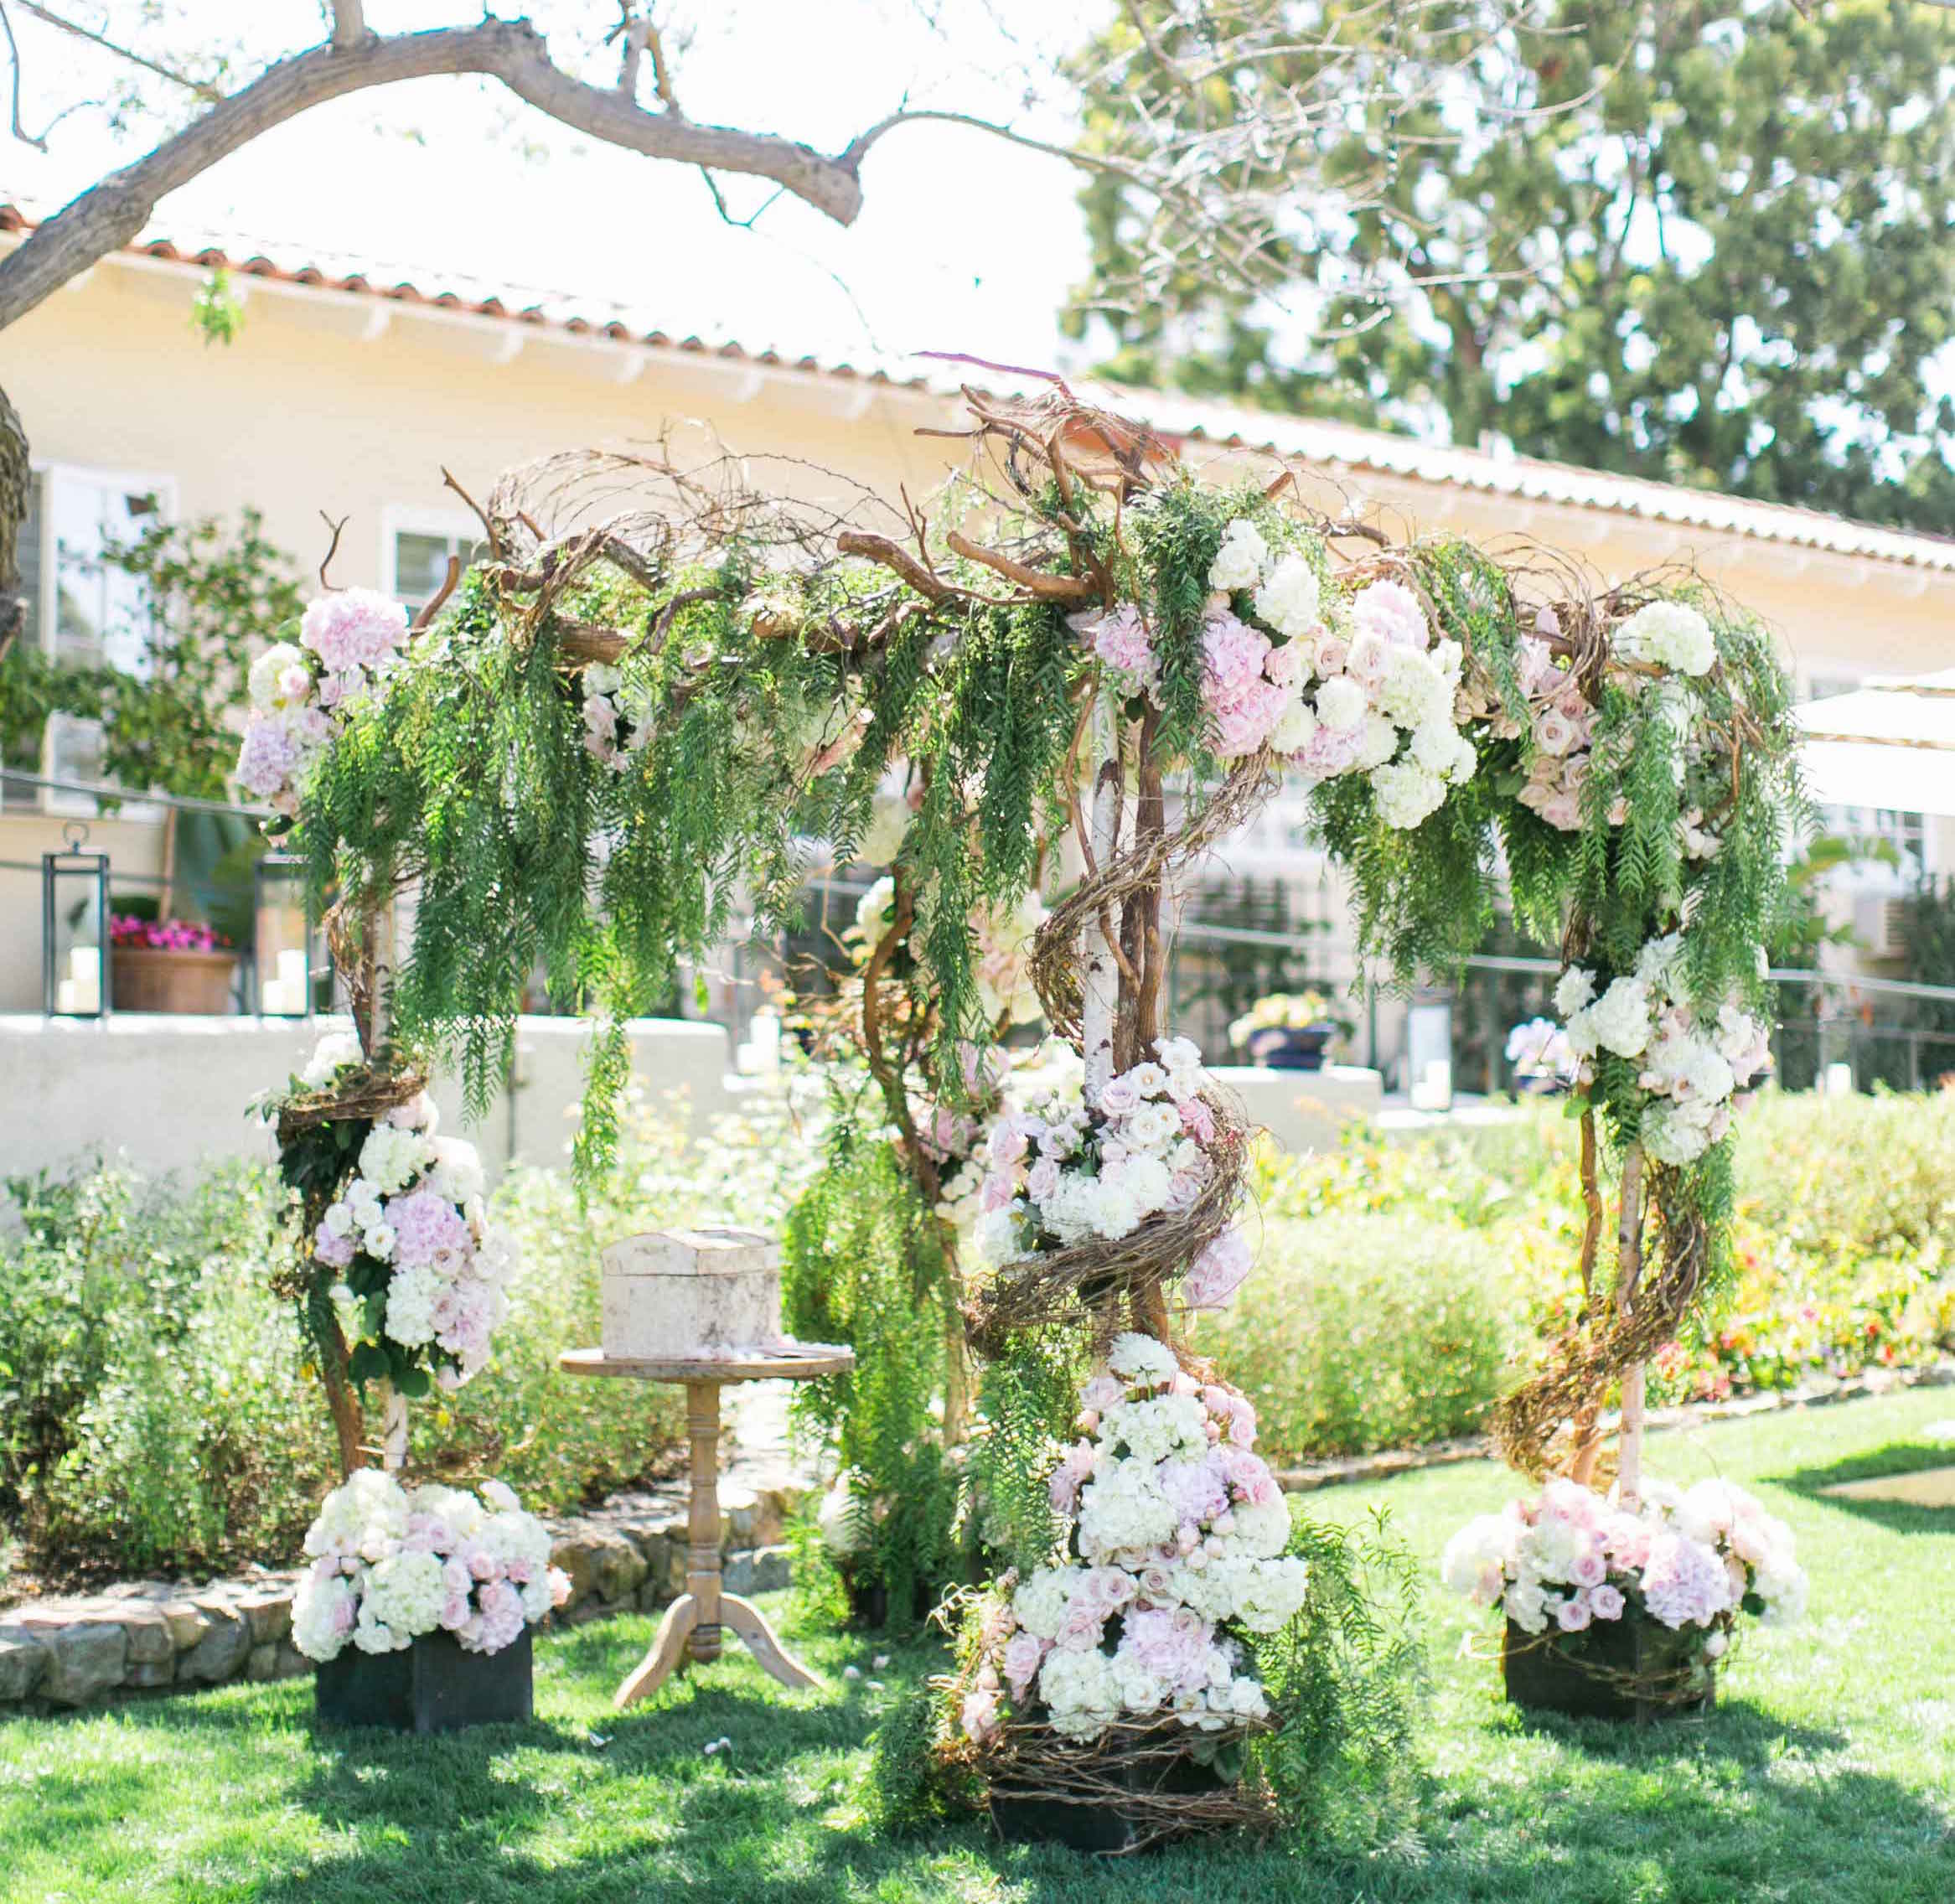 Outdoor Wedding Ceremony: Wedding Ceremony Ideas: Flower-Covered Wedding Arch